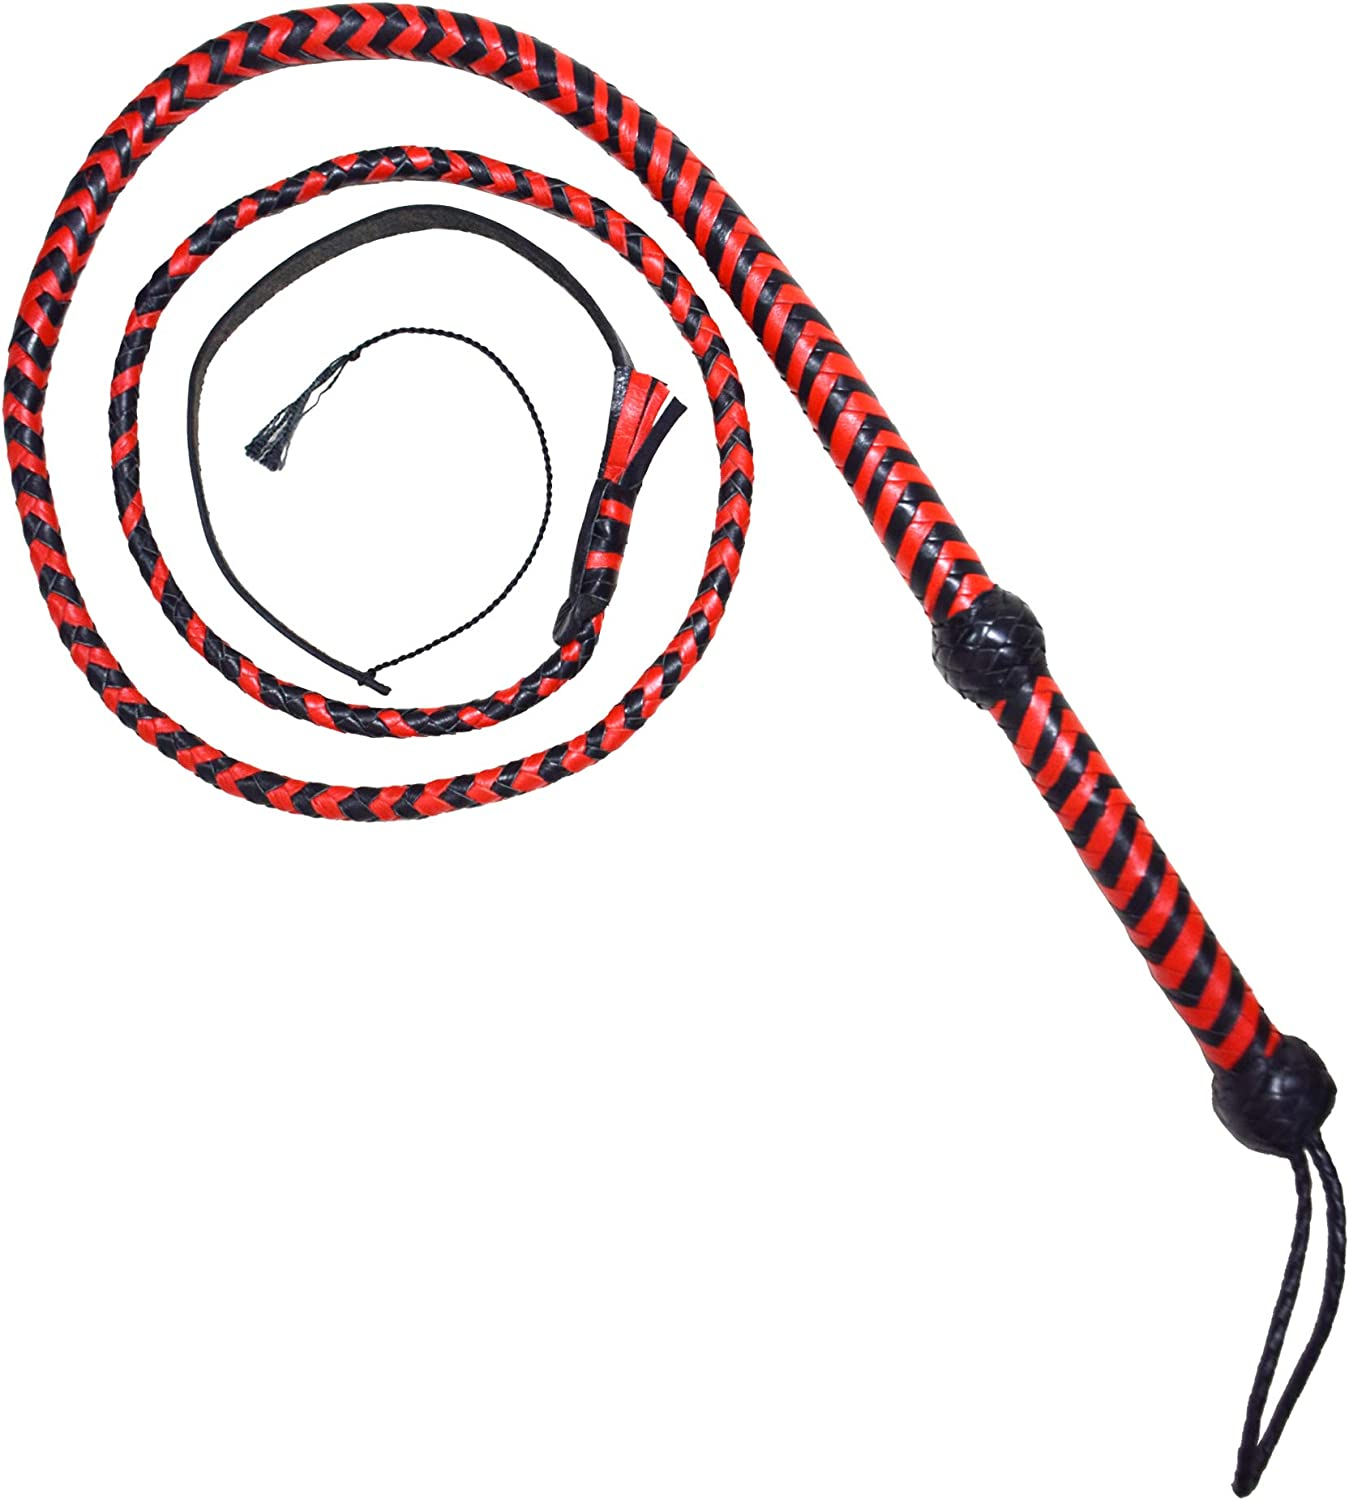 AAYLANS Black Single Tail Flogger Bull Whip with Small Paddle ON The TOP Made of Cow Hide Leather 3 Ft Long /& 12 PLAITS